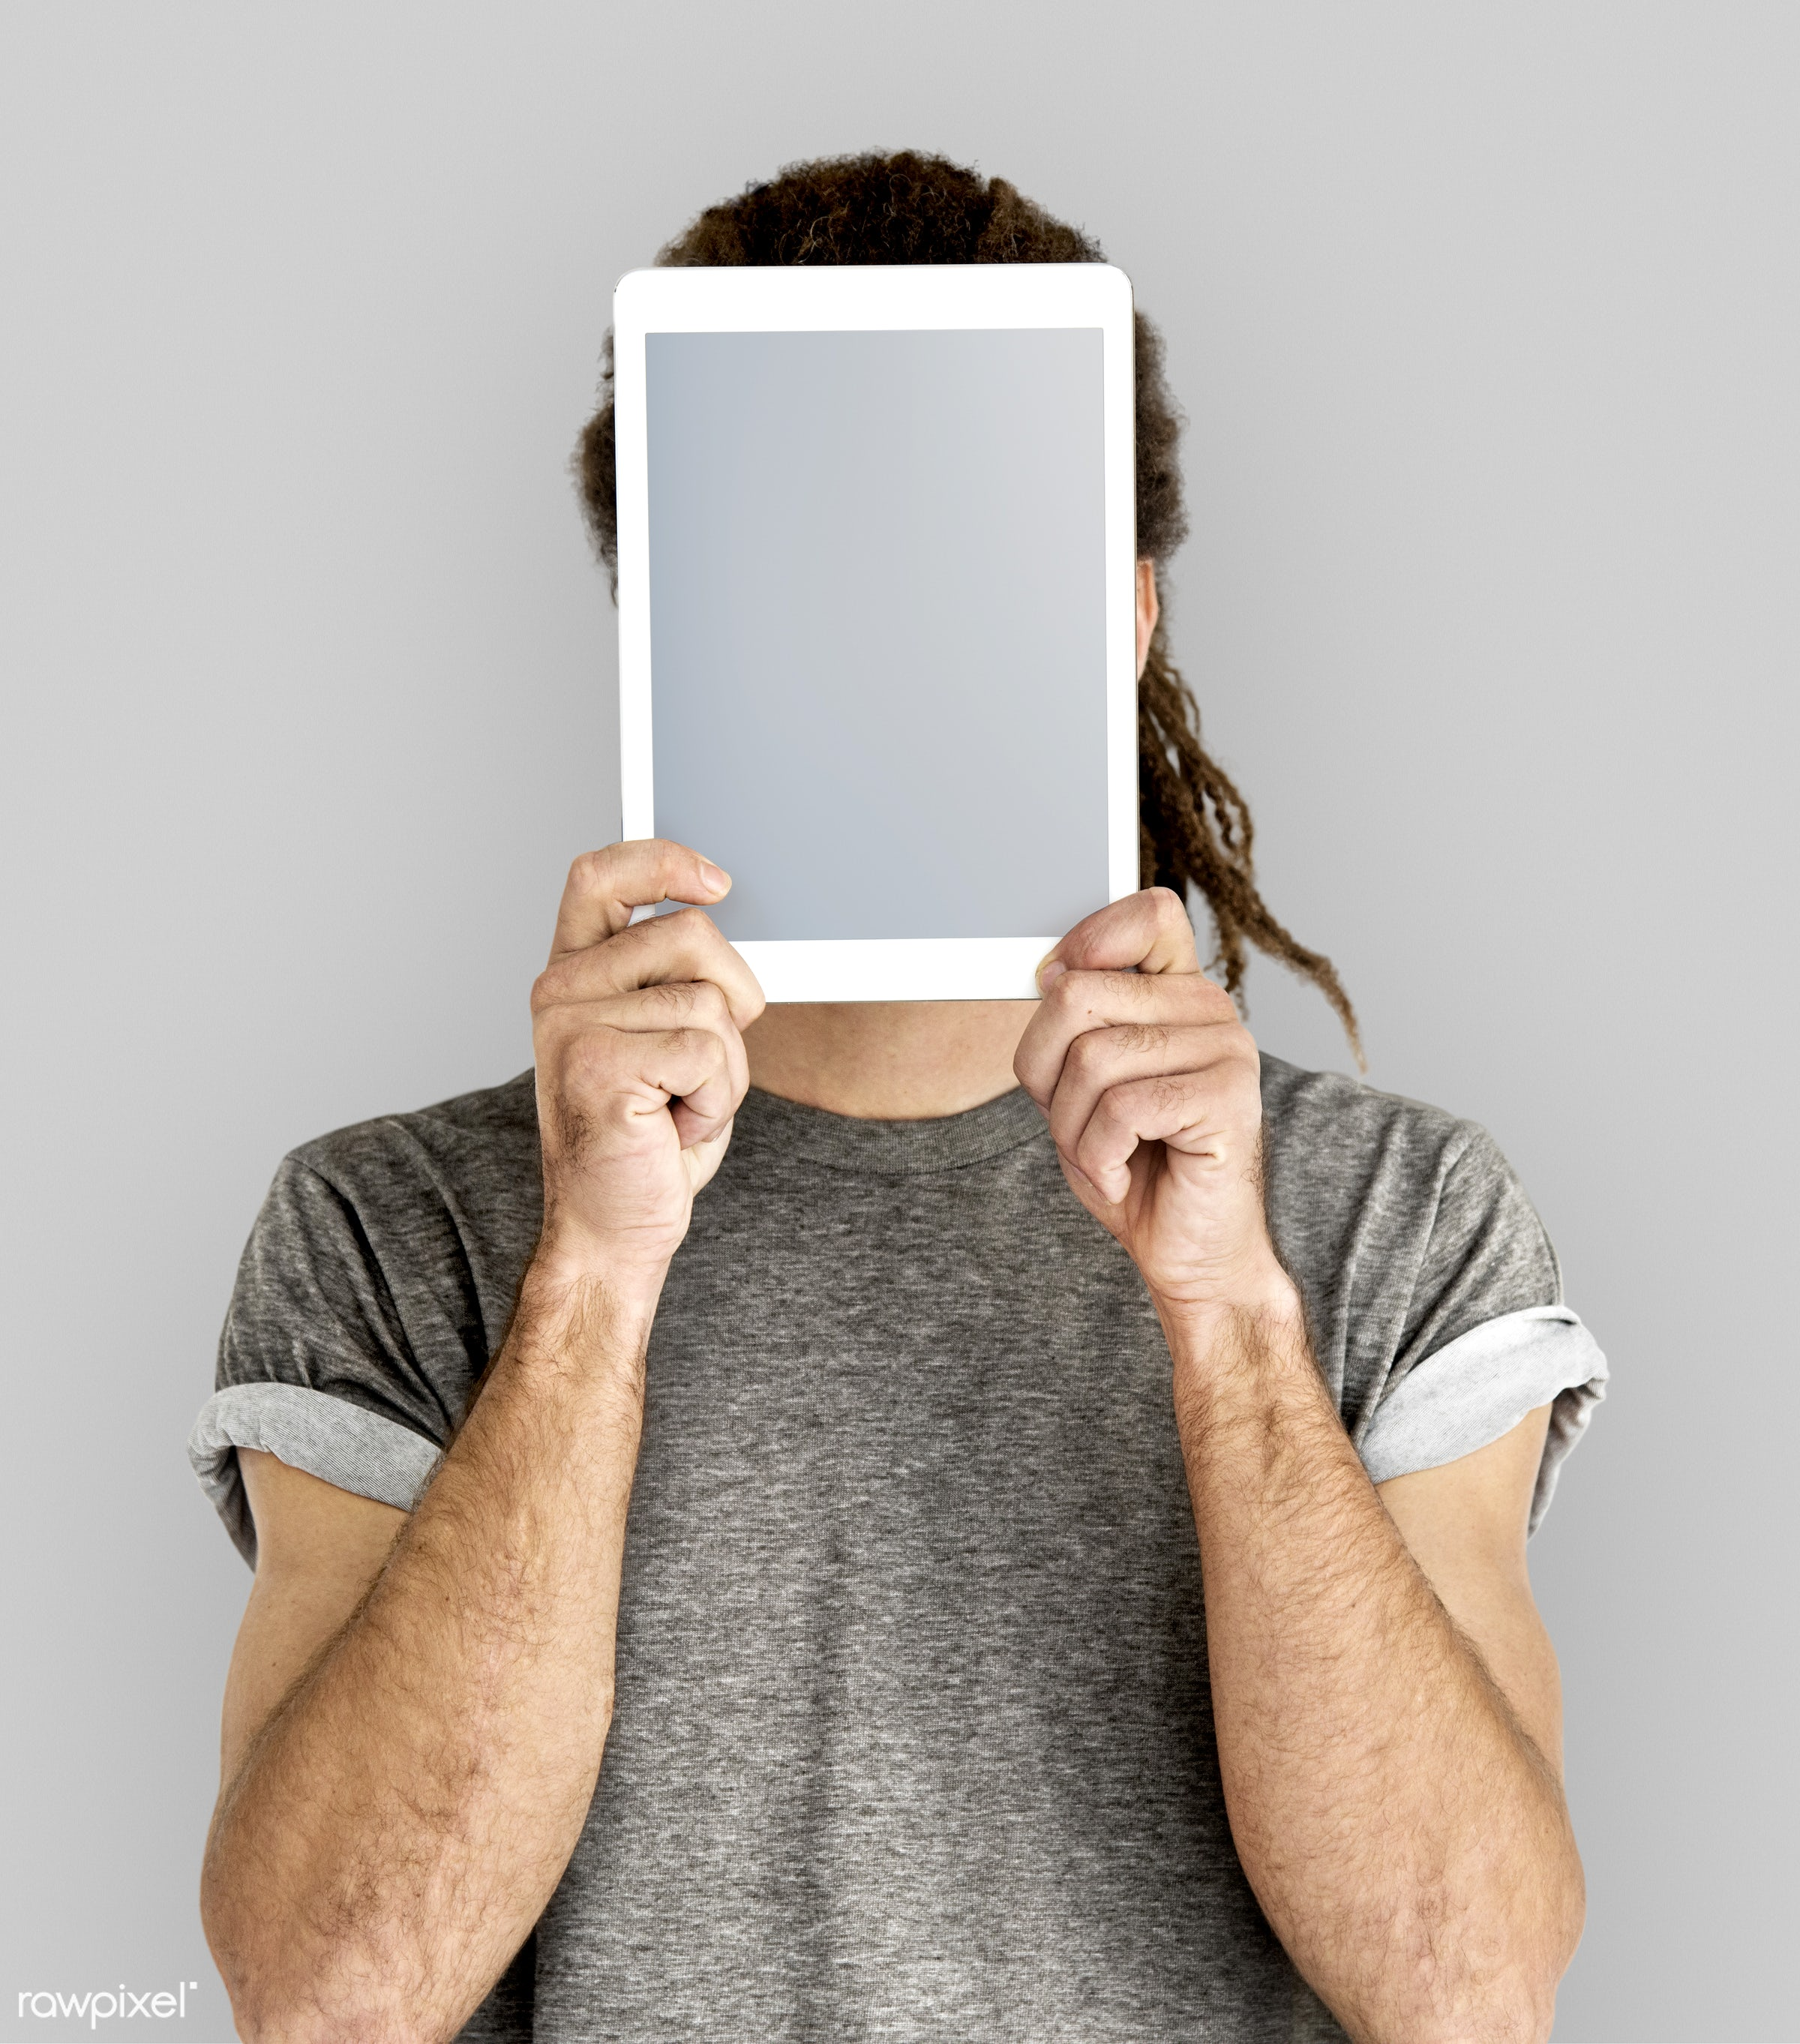 studio, technology, portable, touchpad, holding, people, placard, empty, screen, isolated, canvas, display, board, project,...